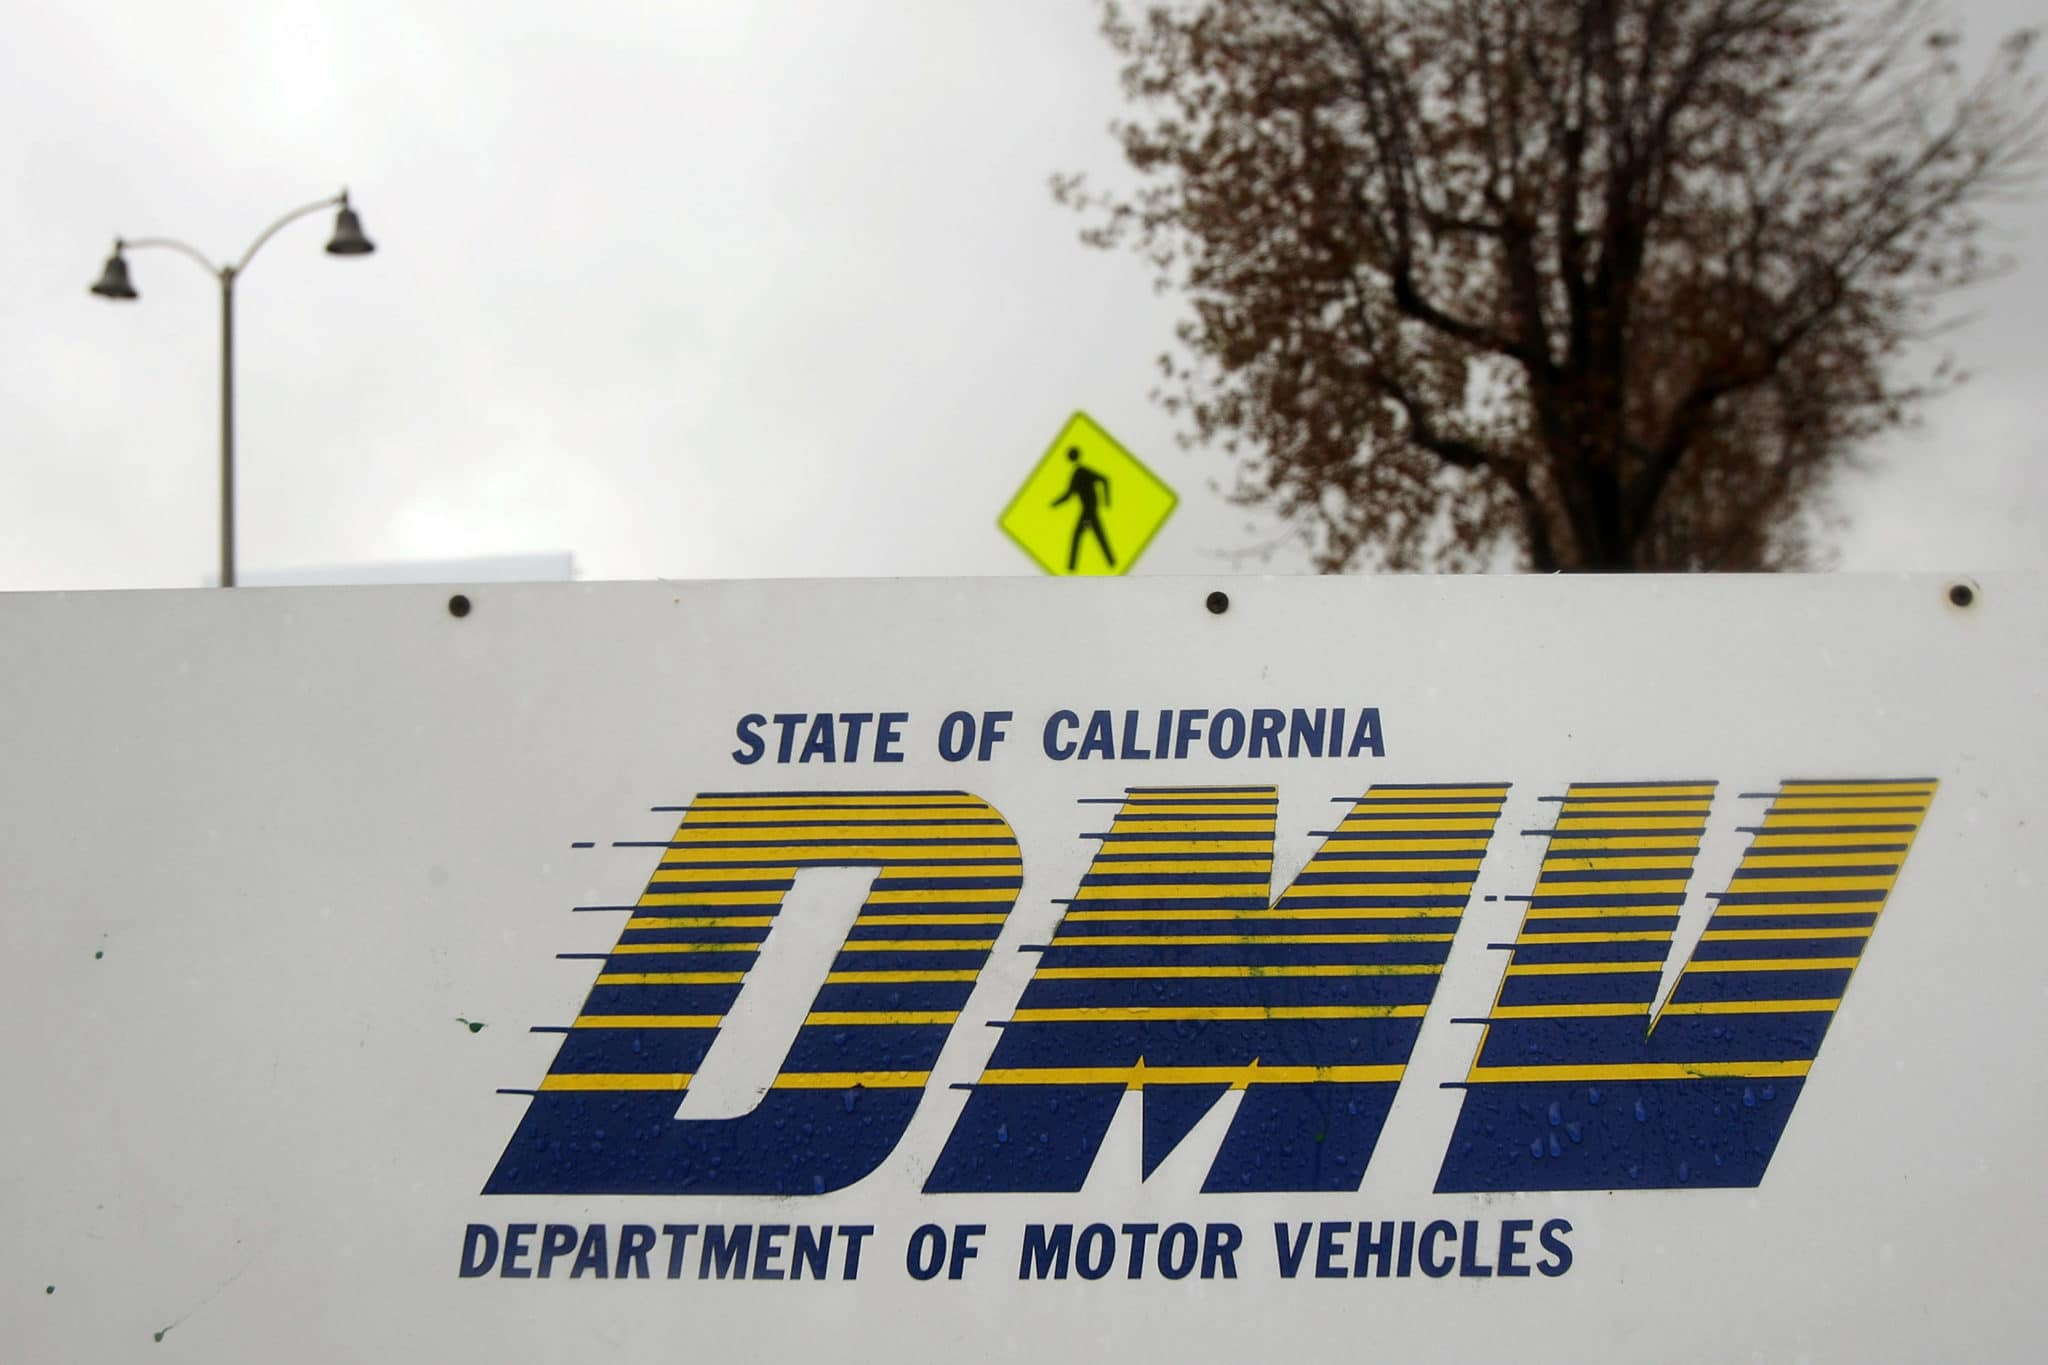 A gay man took on the California Department of Motor Vehicles (DMV) over the QUEER license plate